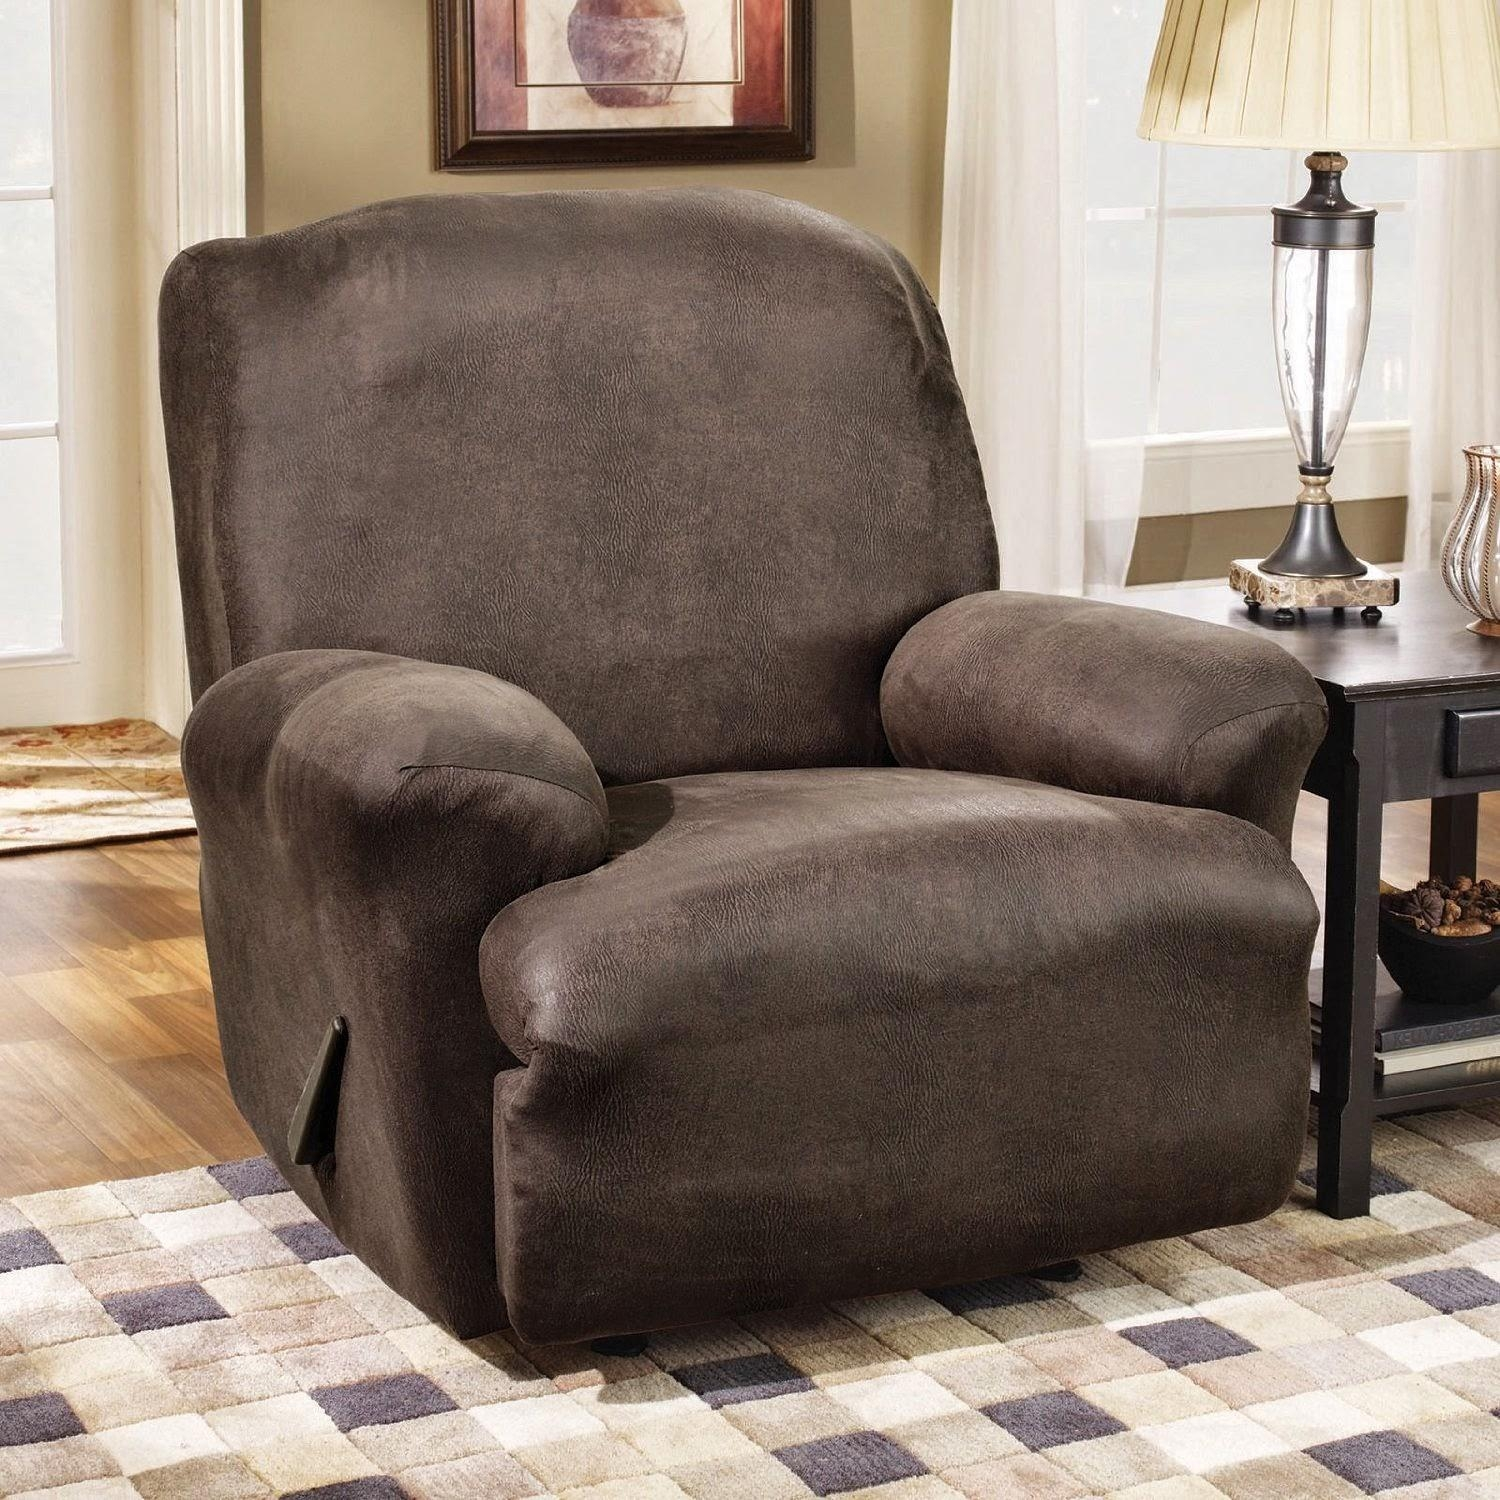 Extraordinary Sofa Armchair Covers Reclining Couch And Posted At Pertaining To Sofa Armchair Covers (View 5 of 20)